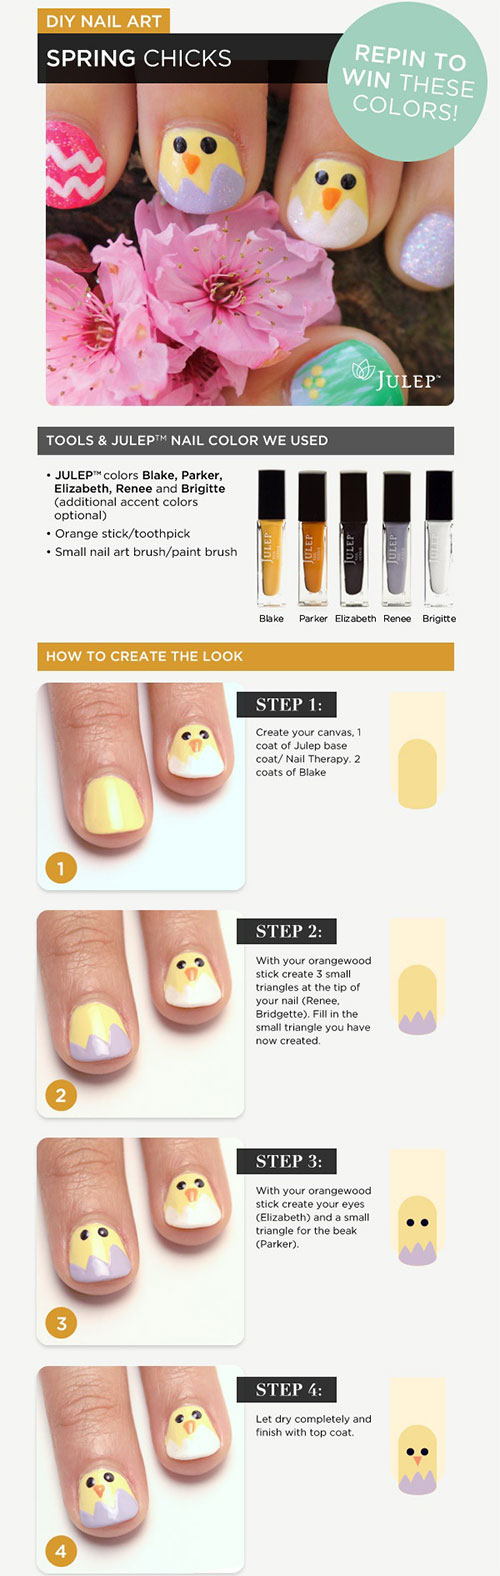 10-Step-By-Step-Easter-Nail-Art-Tutorials-For-Beginners-Learners-2015-8